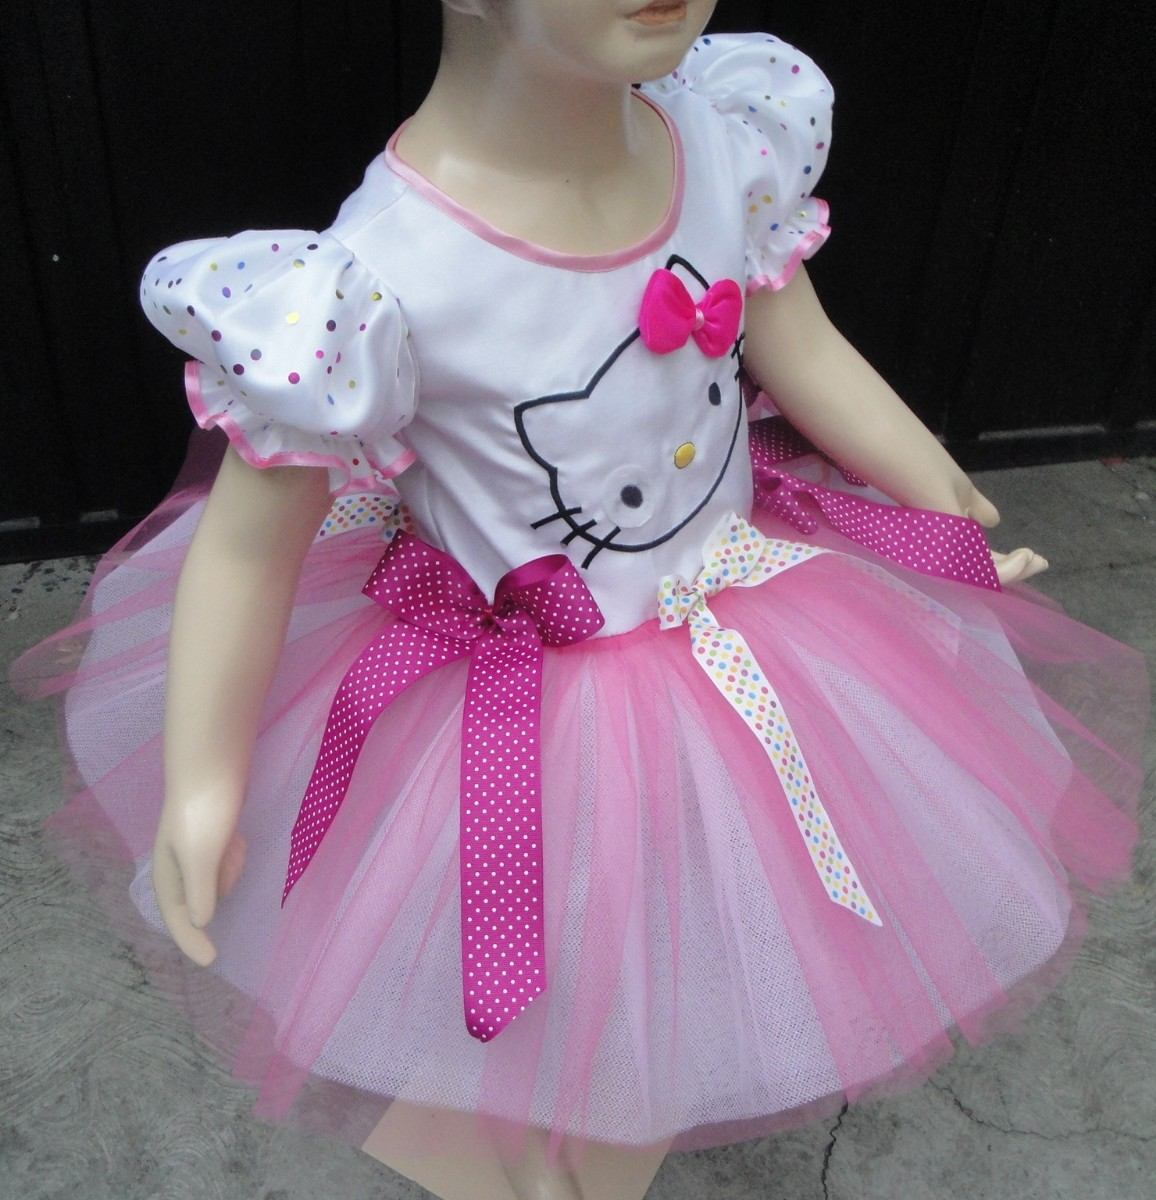 Compra hello kitty costumes for adults y disfruta del